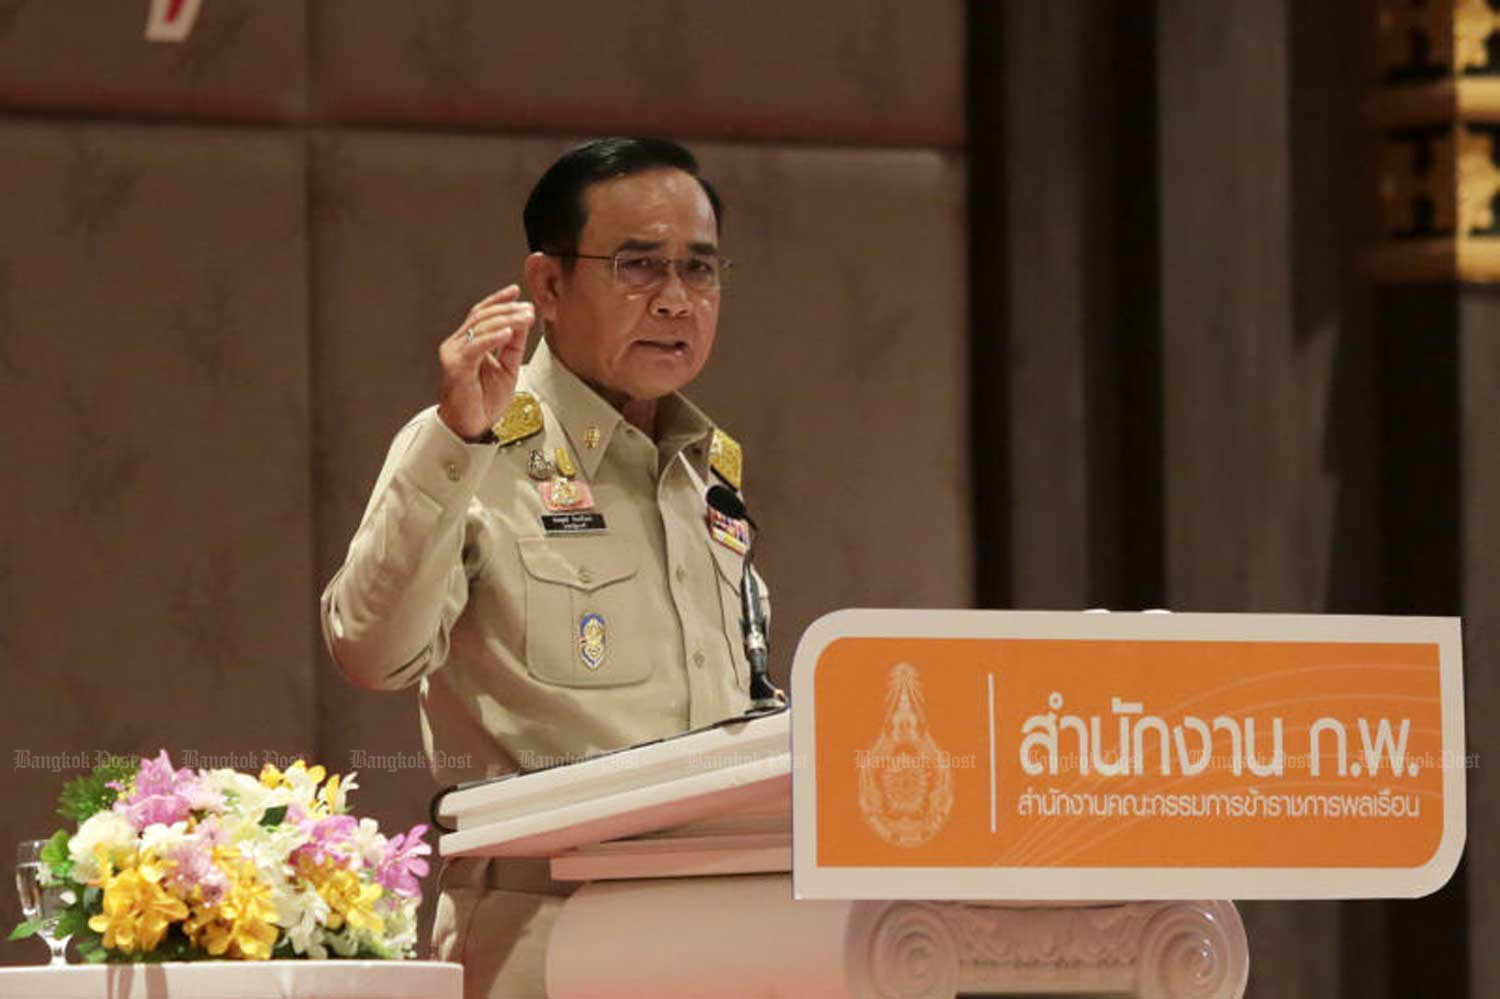 Prime Minister Prayut Chan-o-cha addresses a seminar on the implementation of national strategies at the Impact convention complex in Nonthaburi province on Monday. (Photo by Chanat Katanyu)